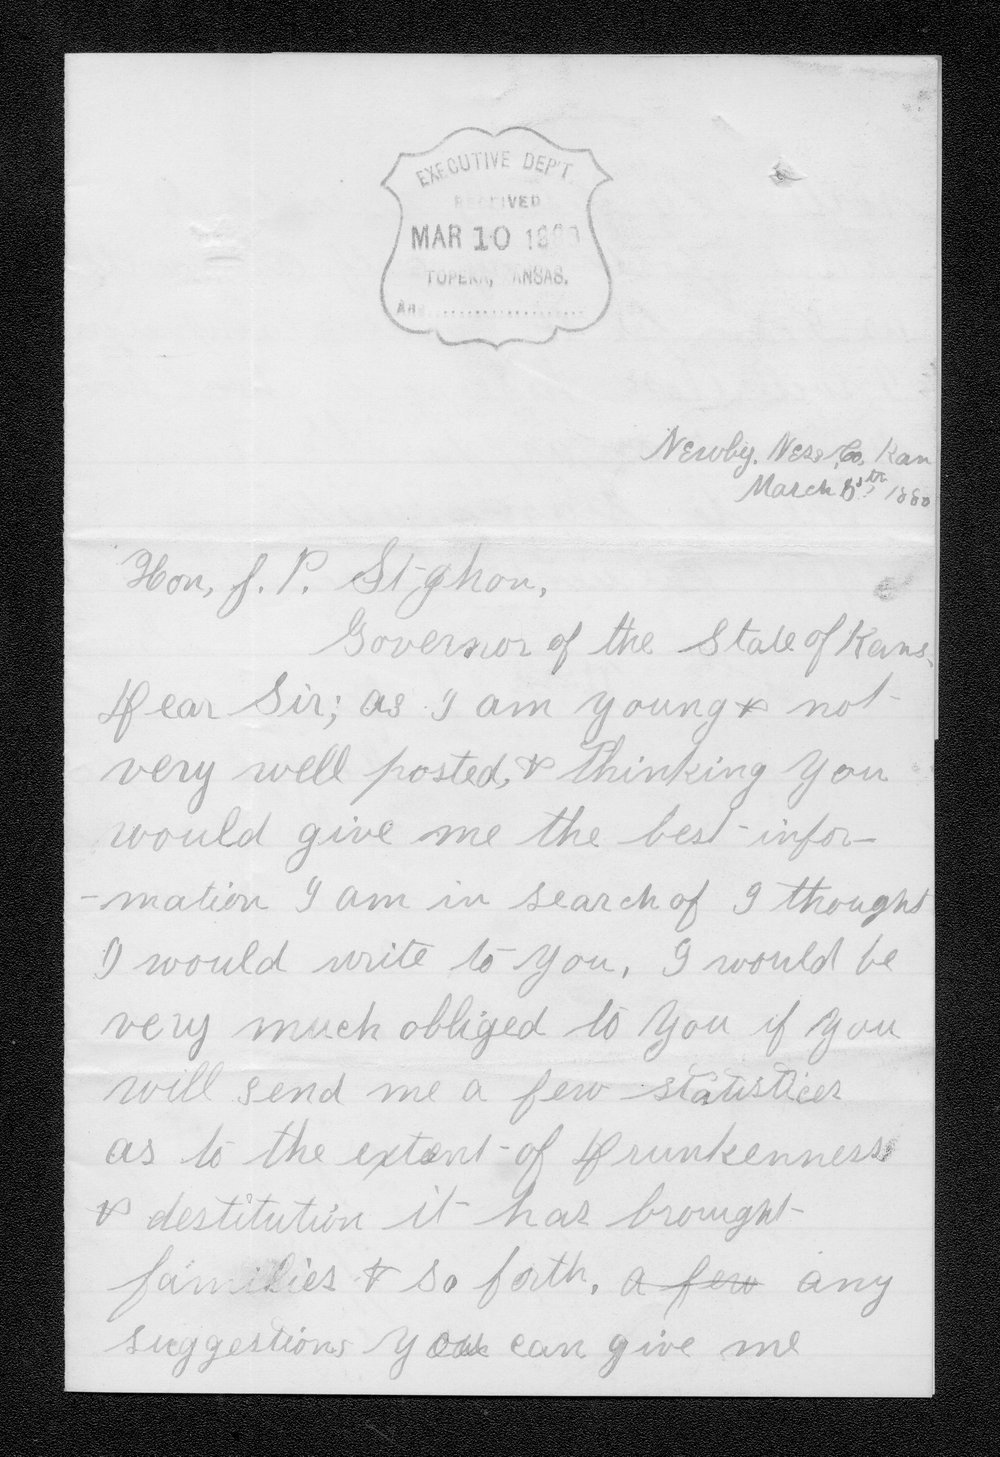 William S. Newby to Governor John St. John - 1